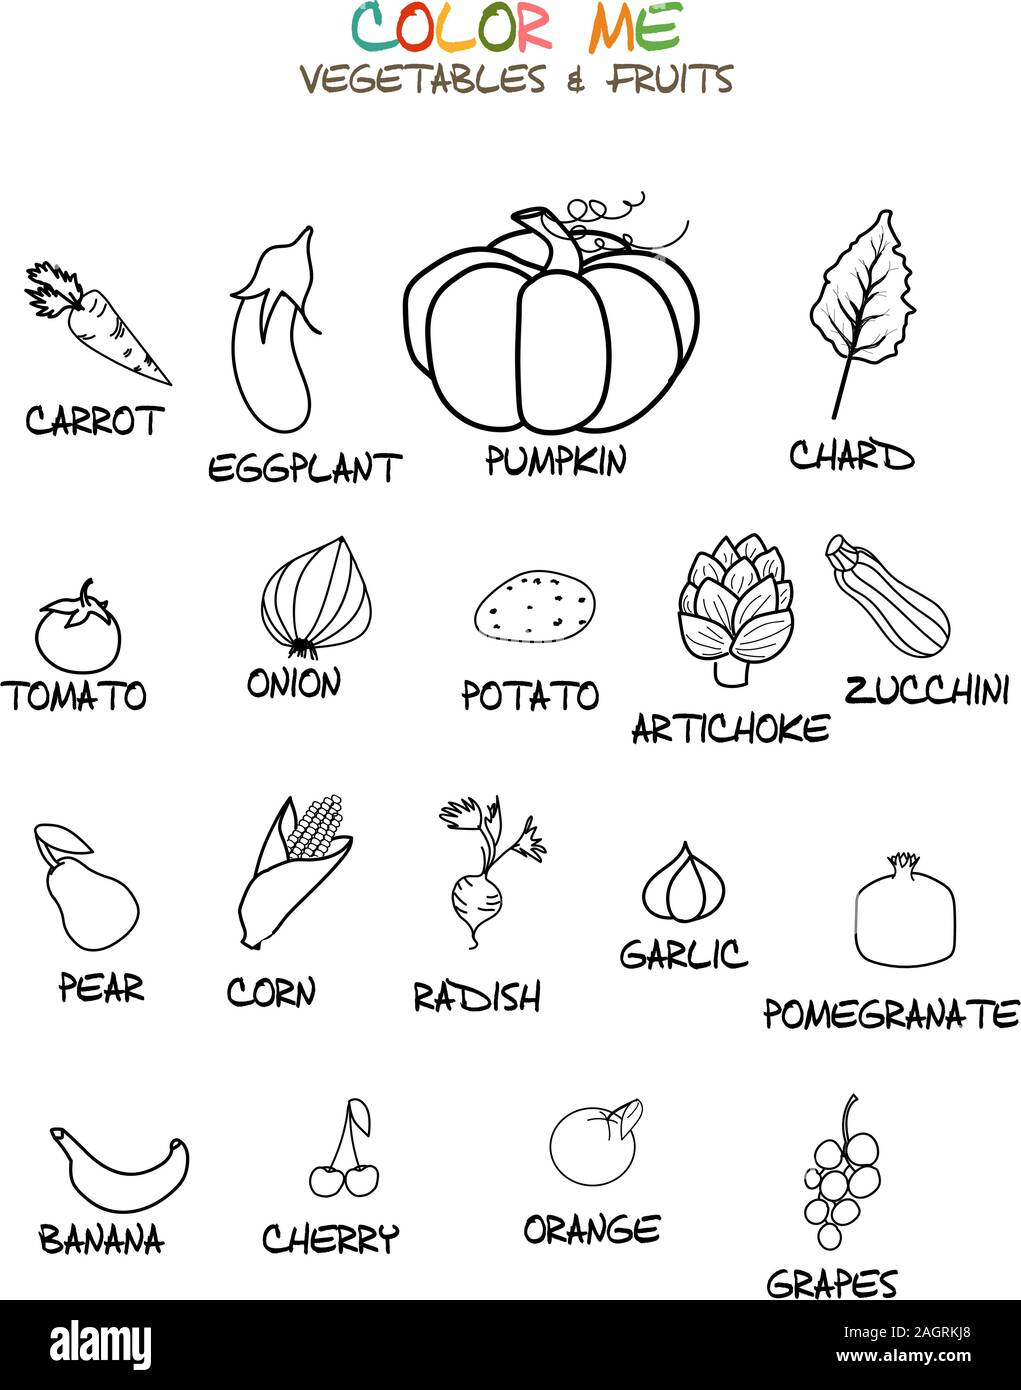 - Vegetables And Fruits Coloring Page Stock Vector Art